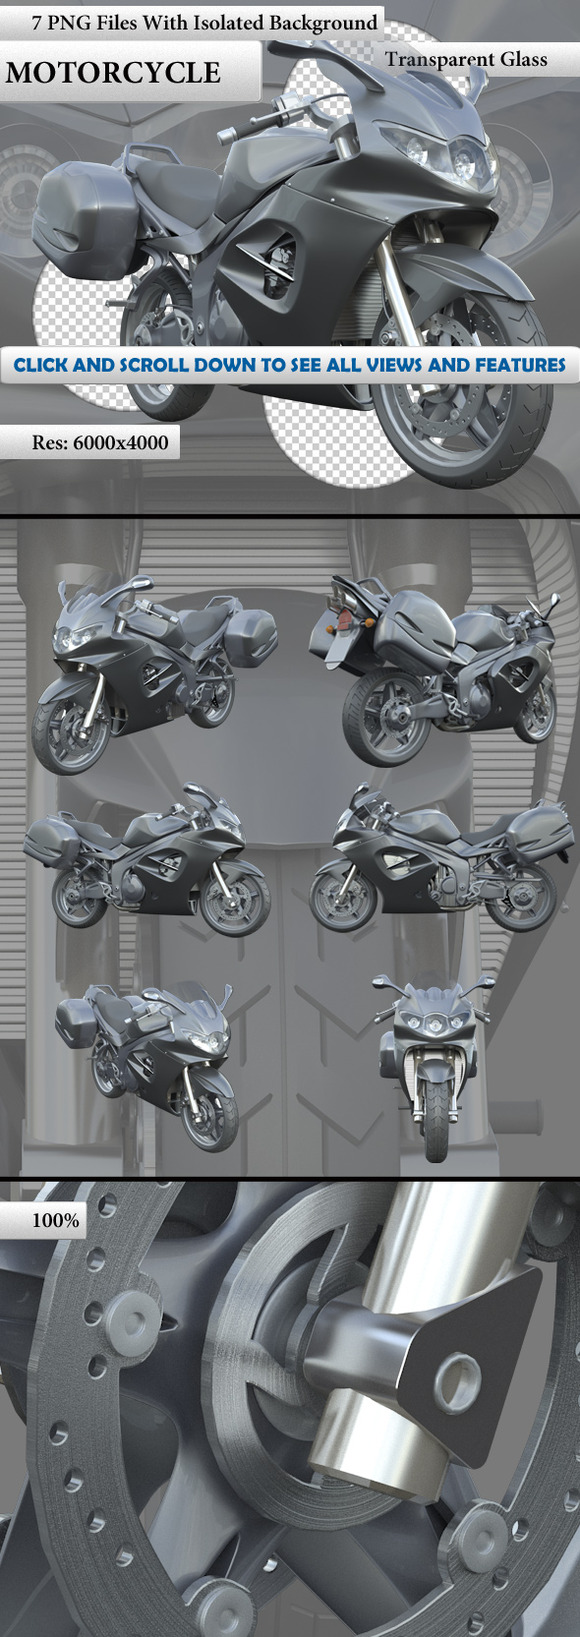 Motorcycle Isolated 7 Renders